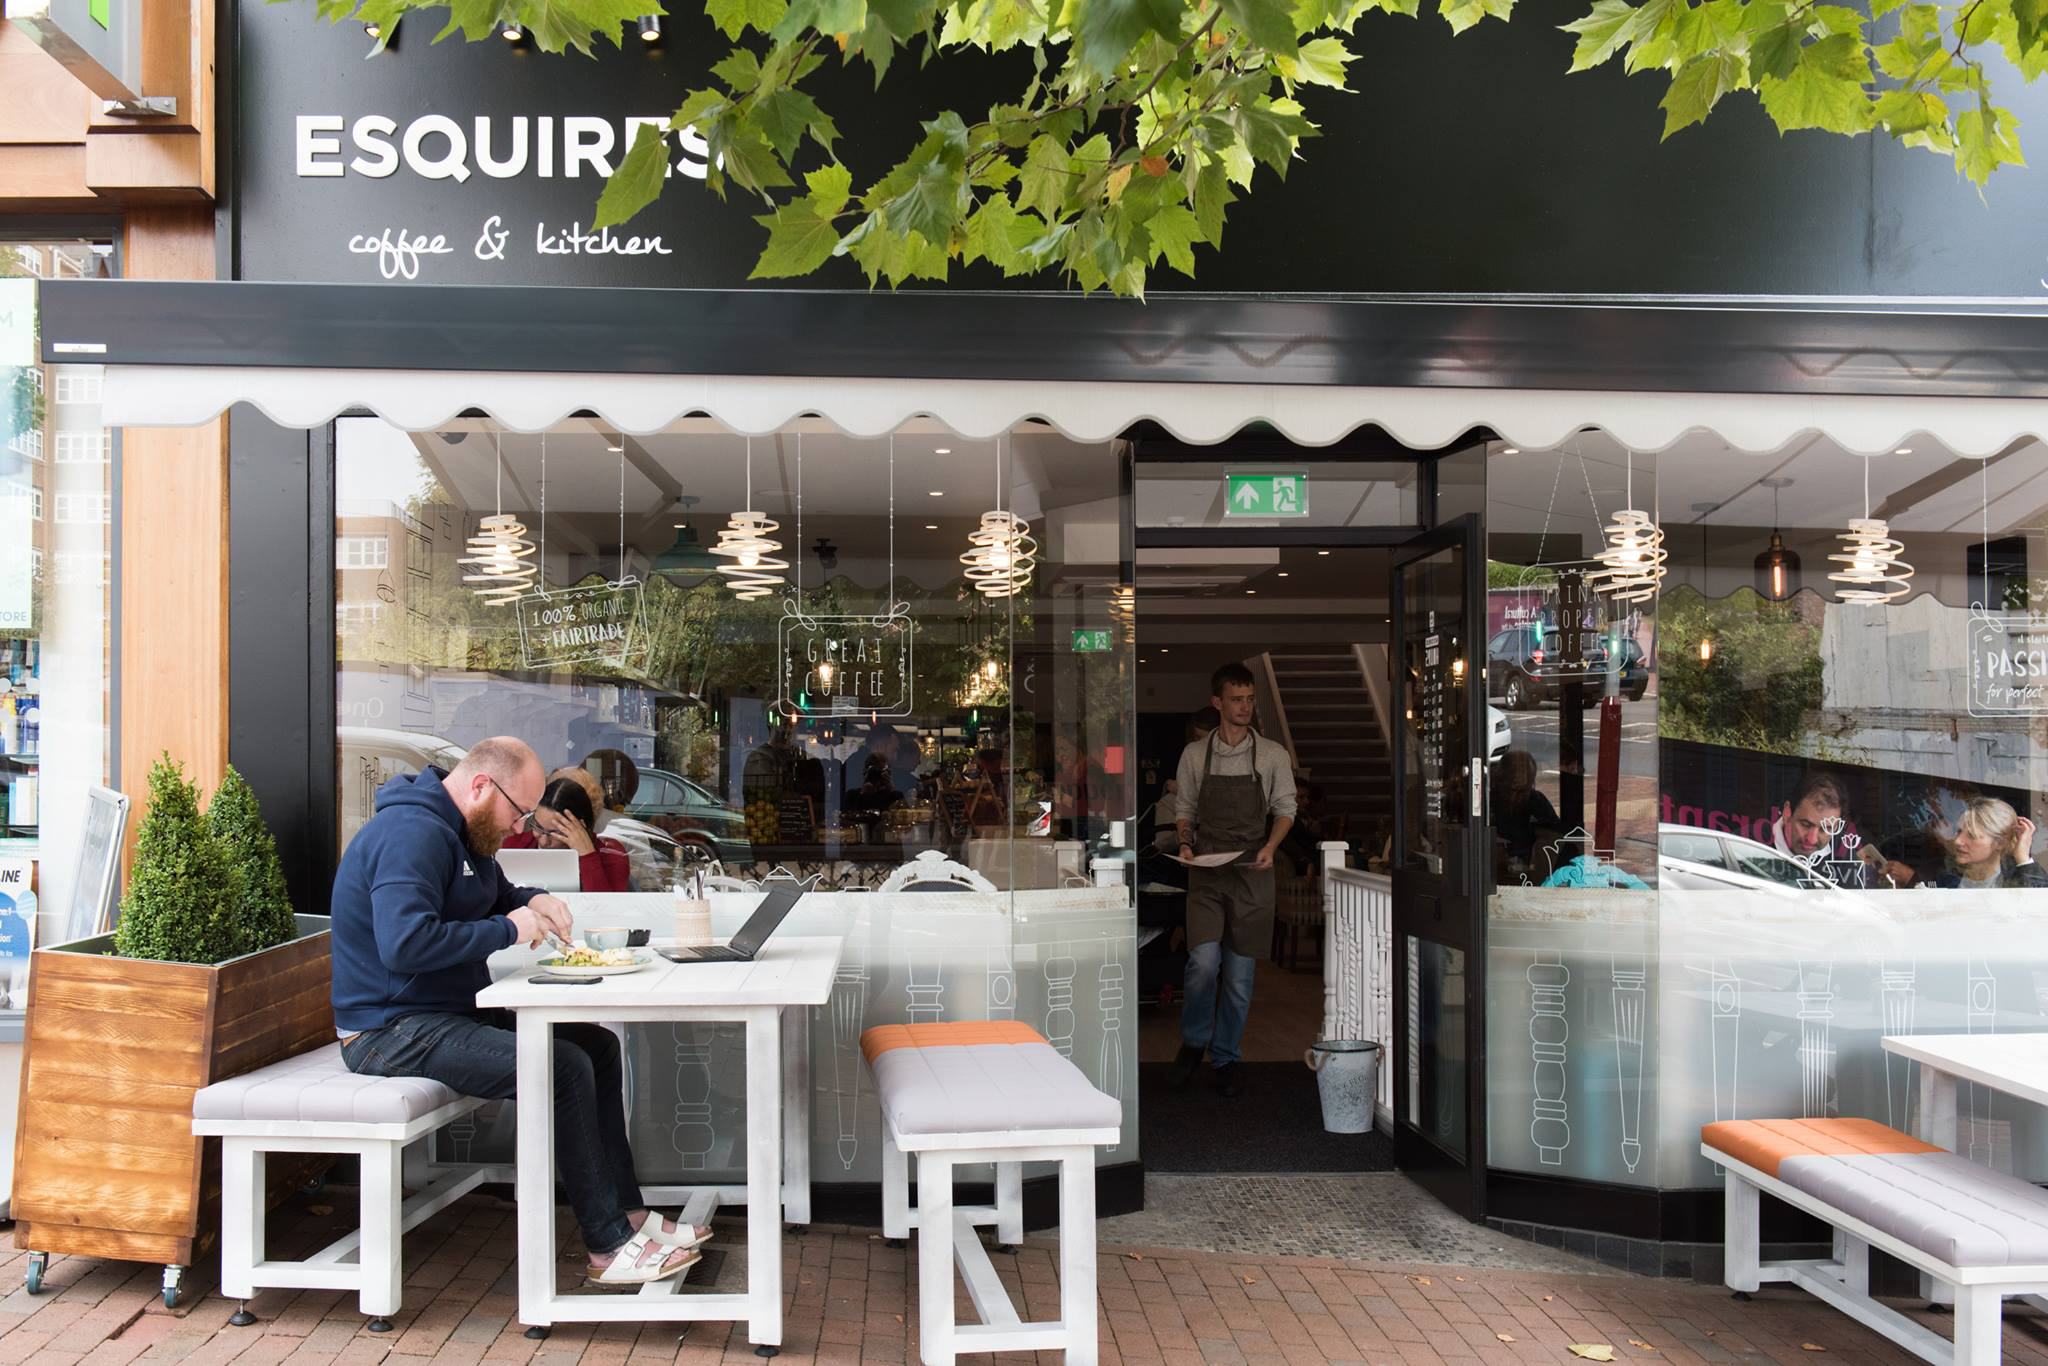 Esquires cafe, vegan, dog friendly and laptop friendly in Royal Tunbridge Wells